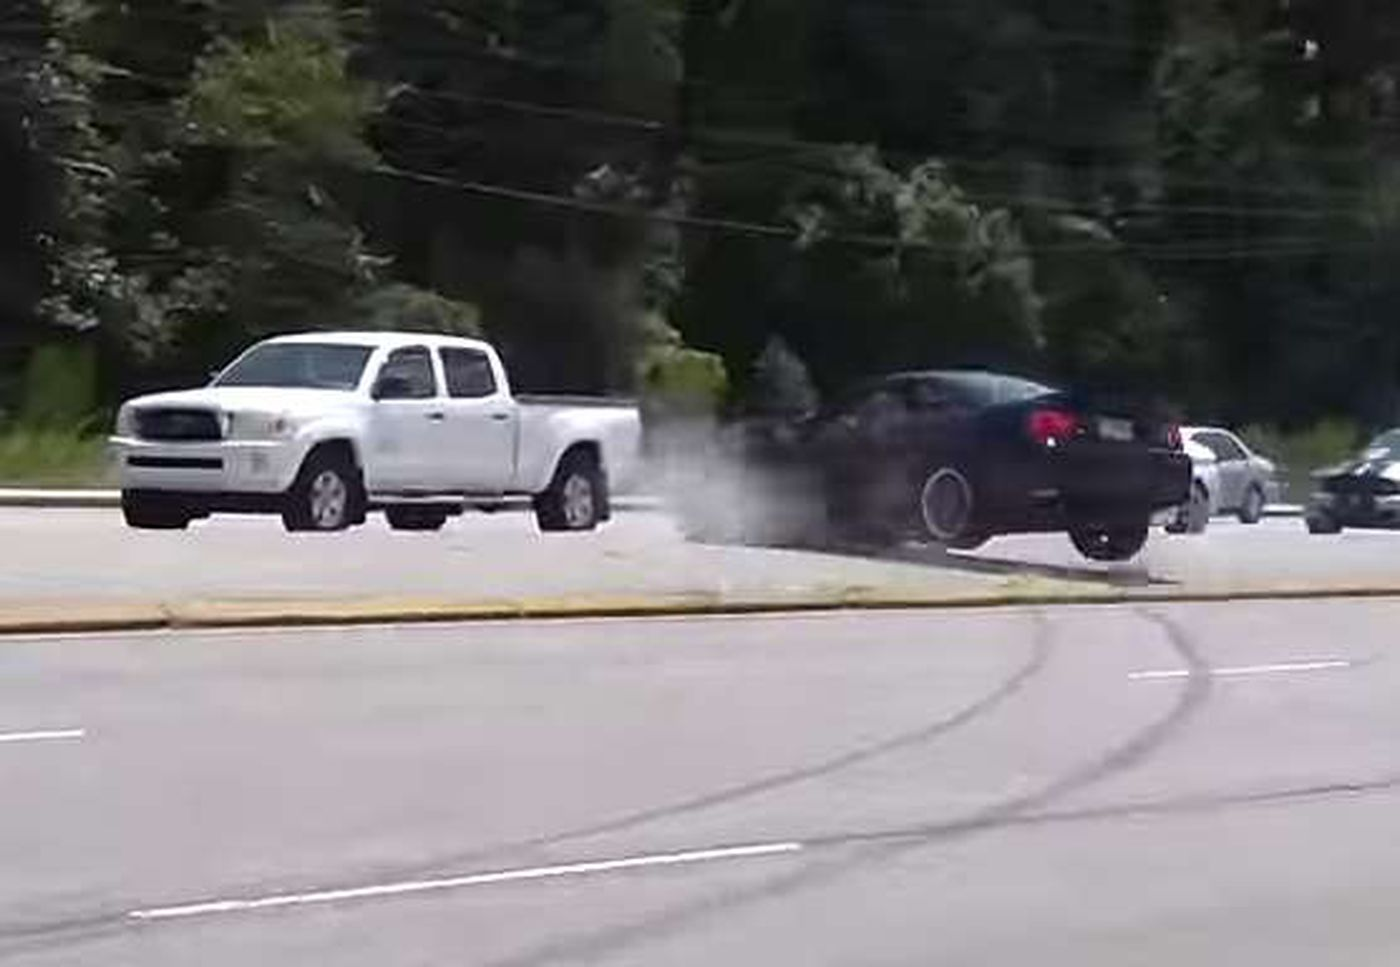 A Video On You Shows Black Mustang Lose Control And Jump Curb Into Oncoming